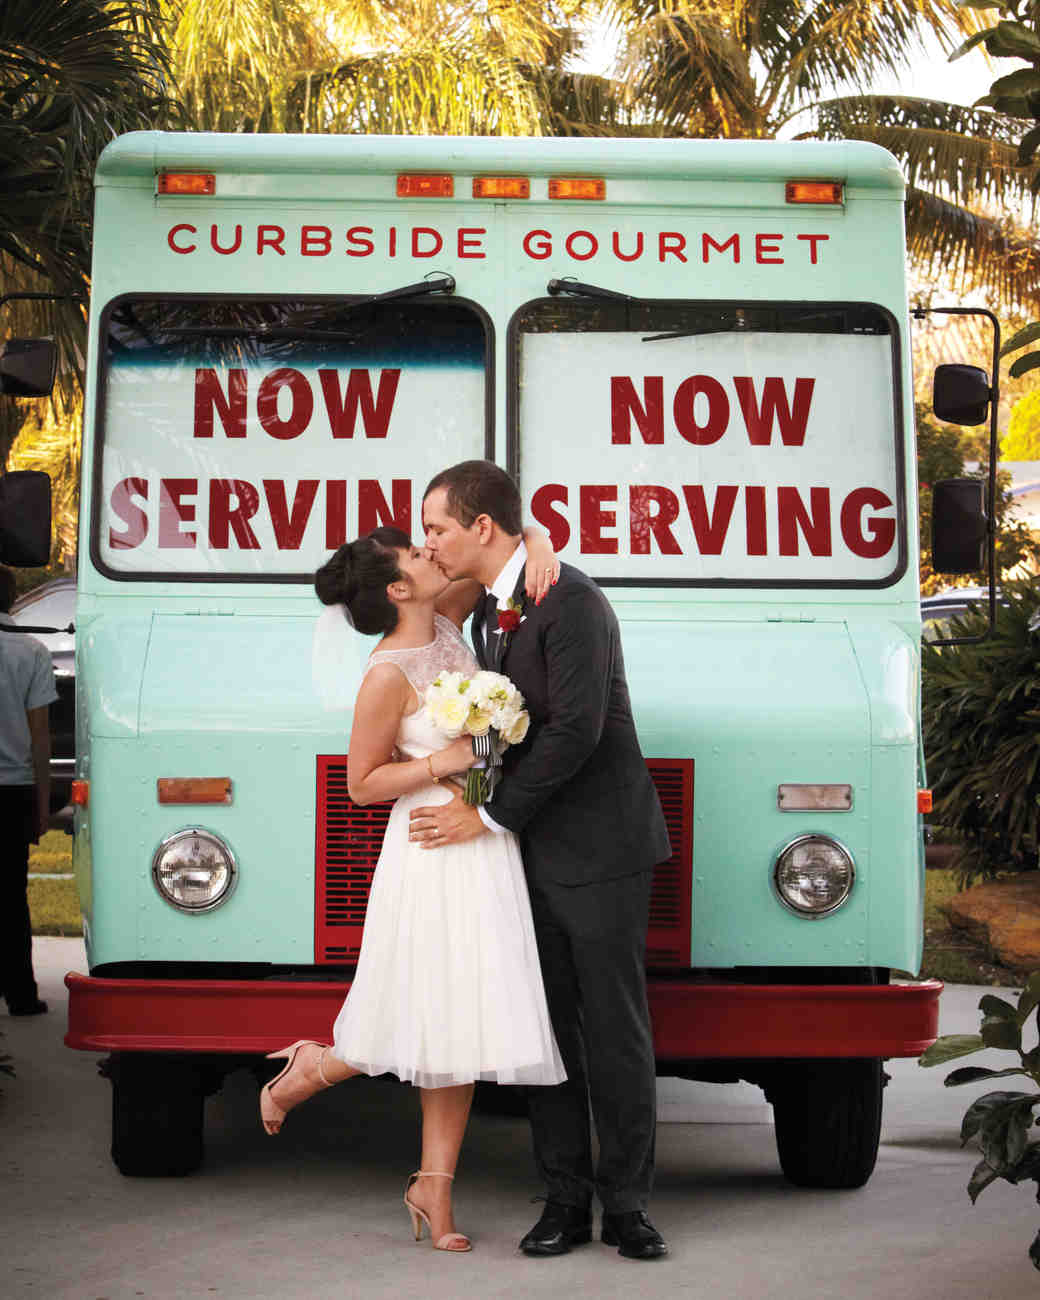 brideandgroom-oodtruck1909-1-mwd109592.jpg